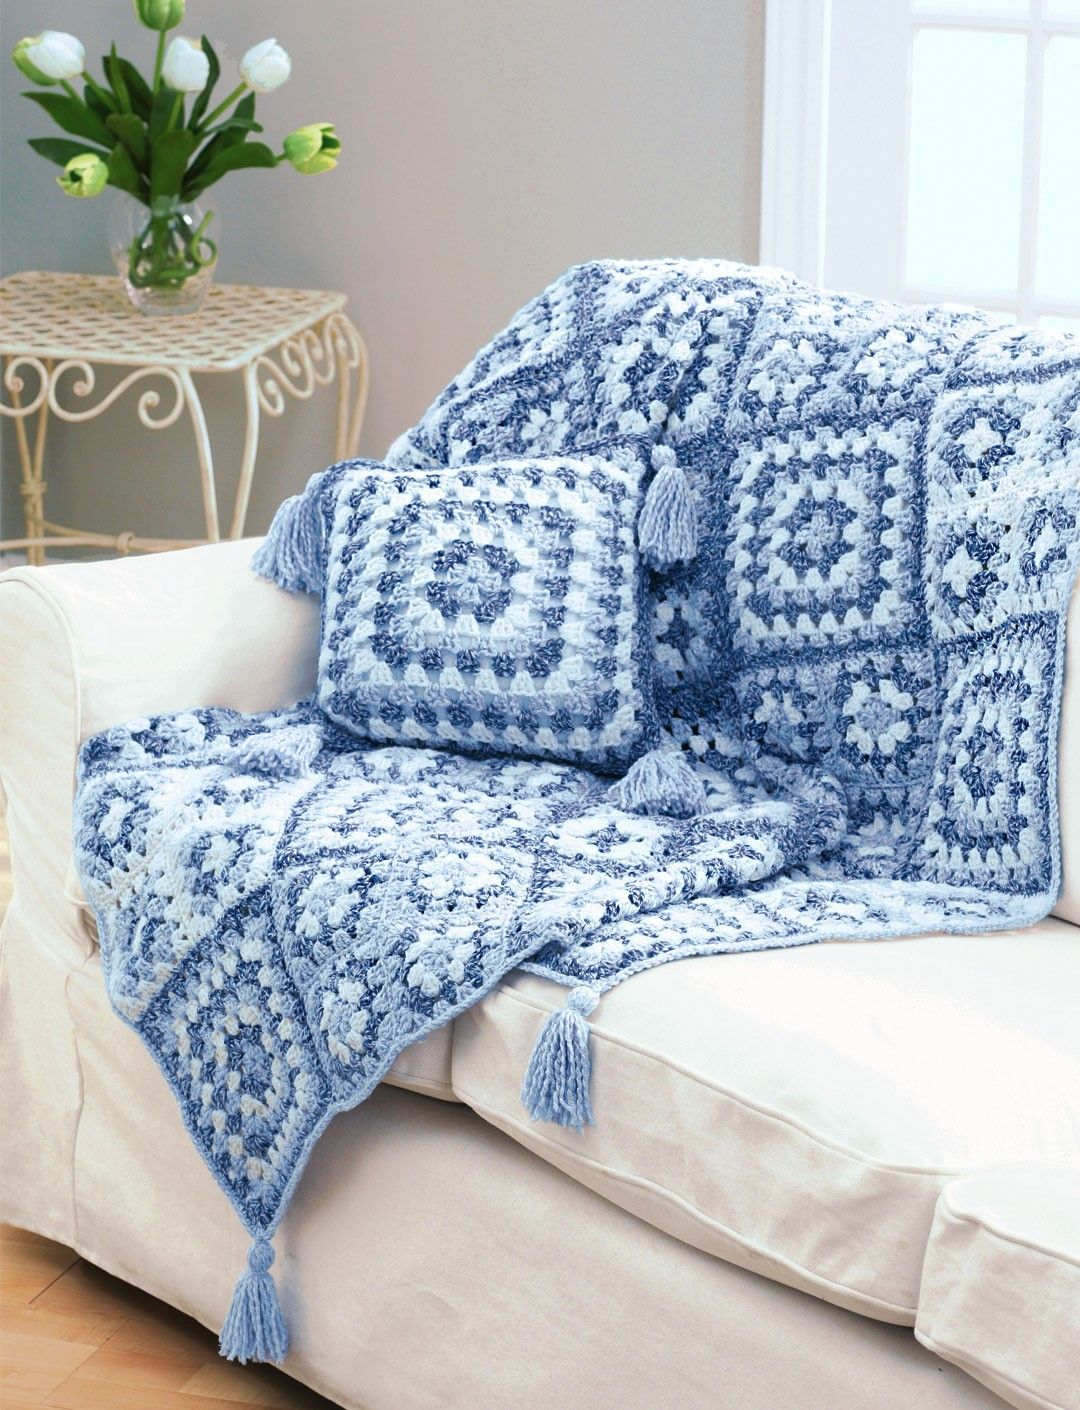 Crochet Granny Square Throw And Pillow - Free Crochet Pattern - (yarnspirations)